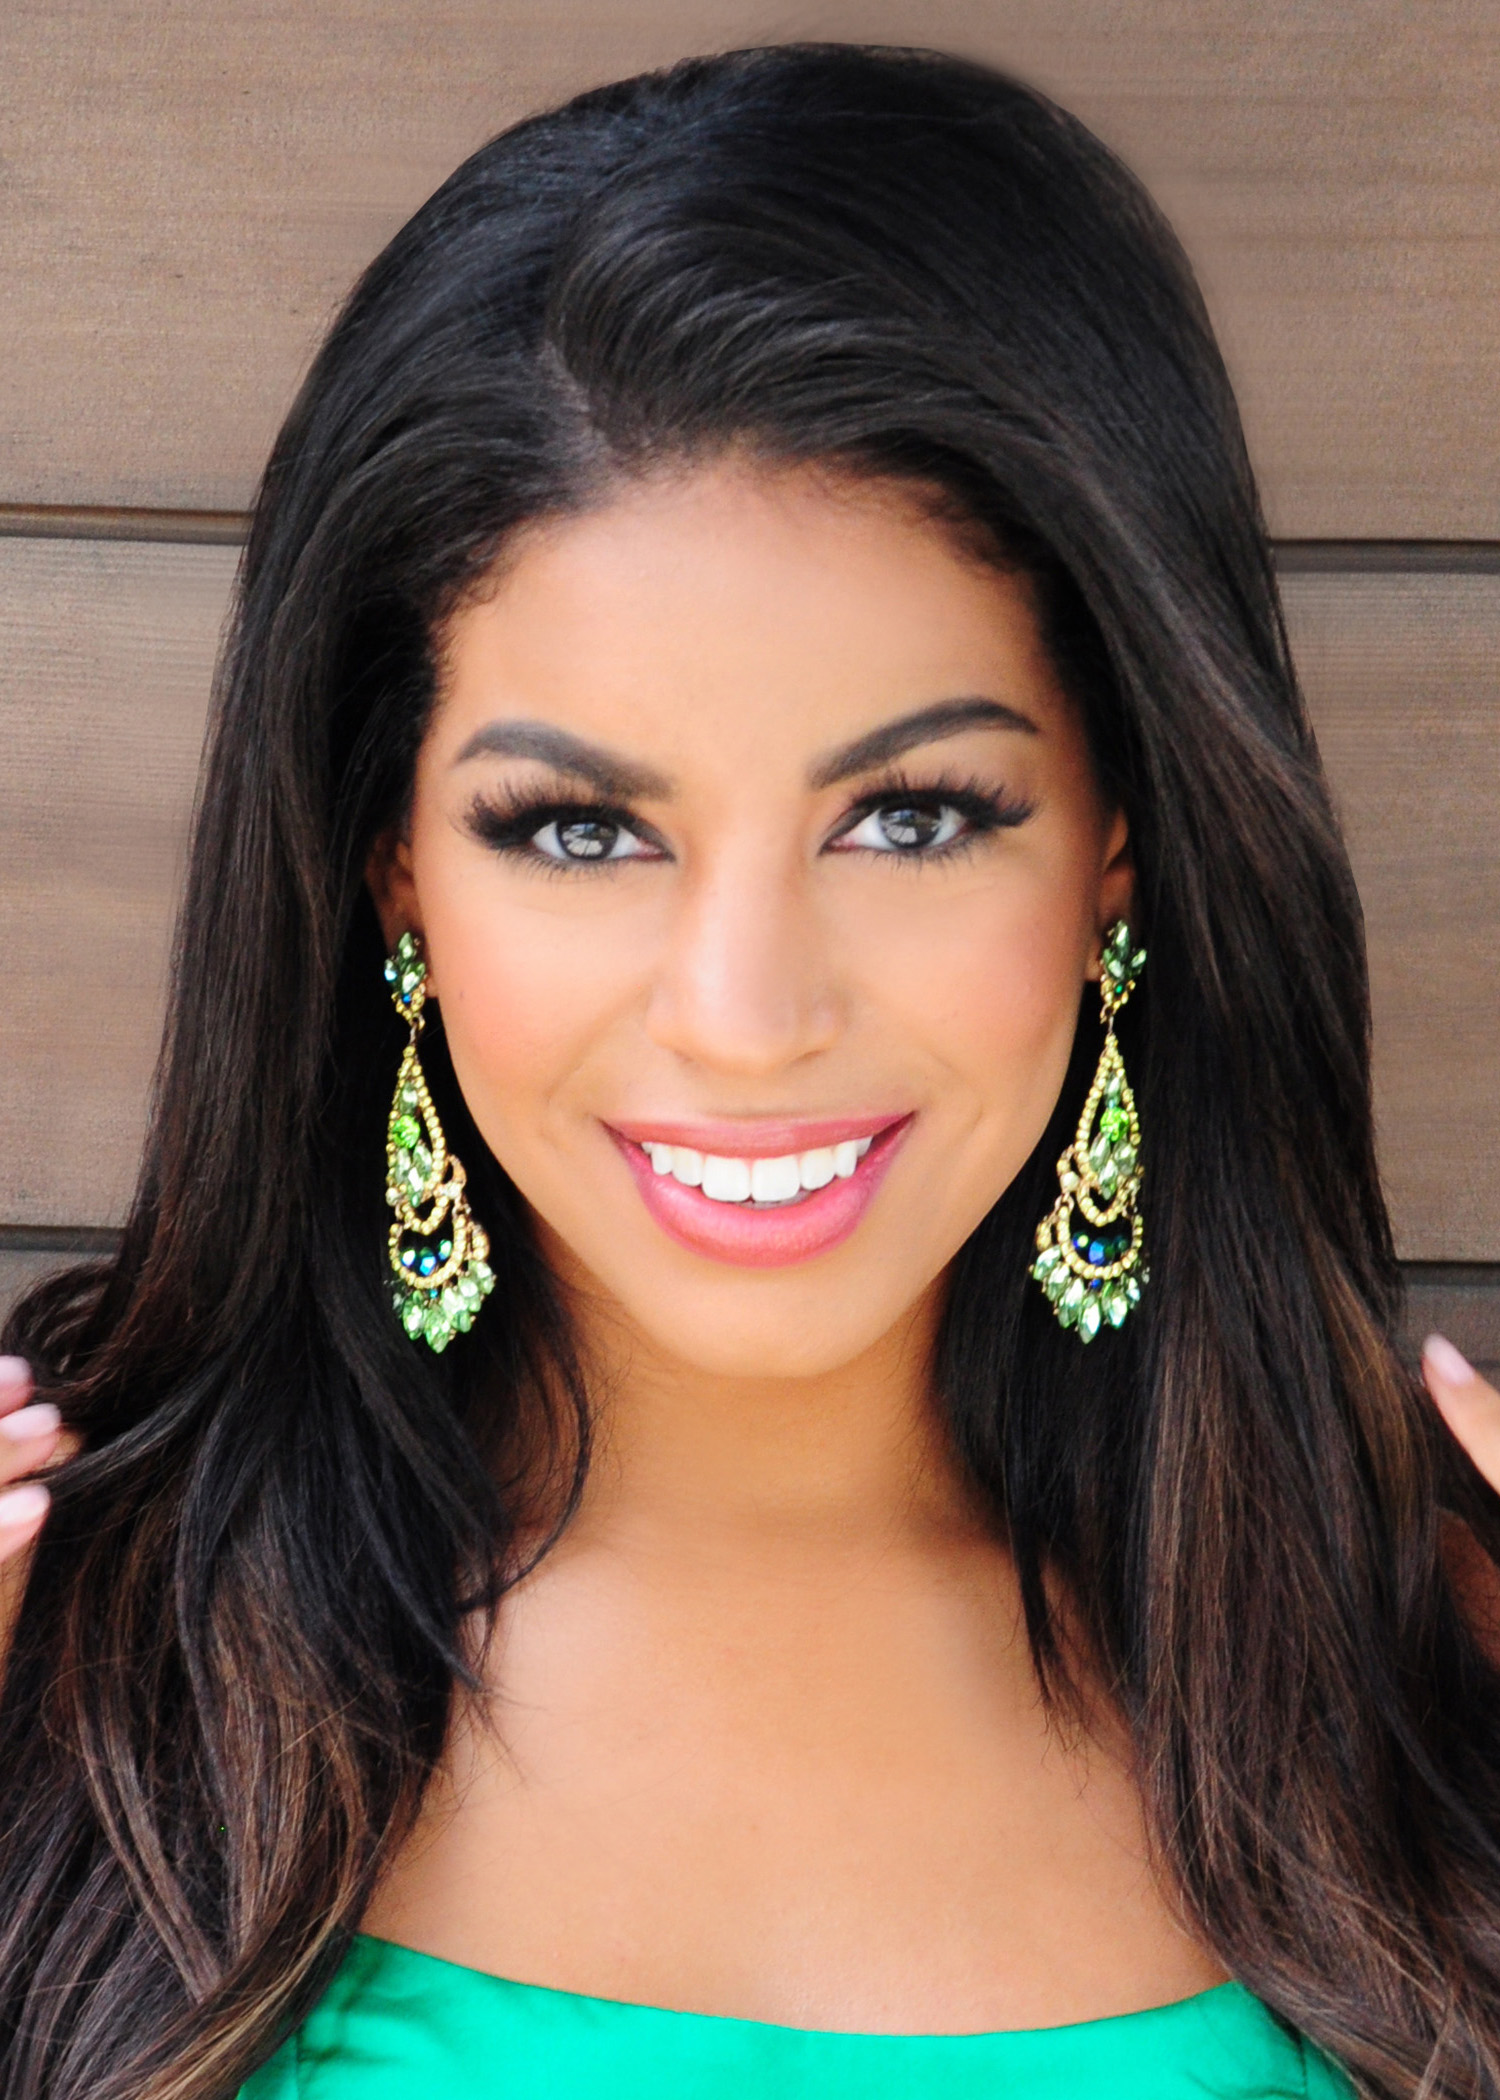 Forum on this topic: Mia Korf, ana-rodriguez-miss-texas-usa/